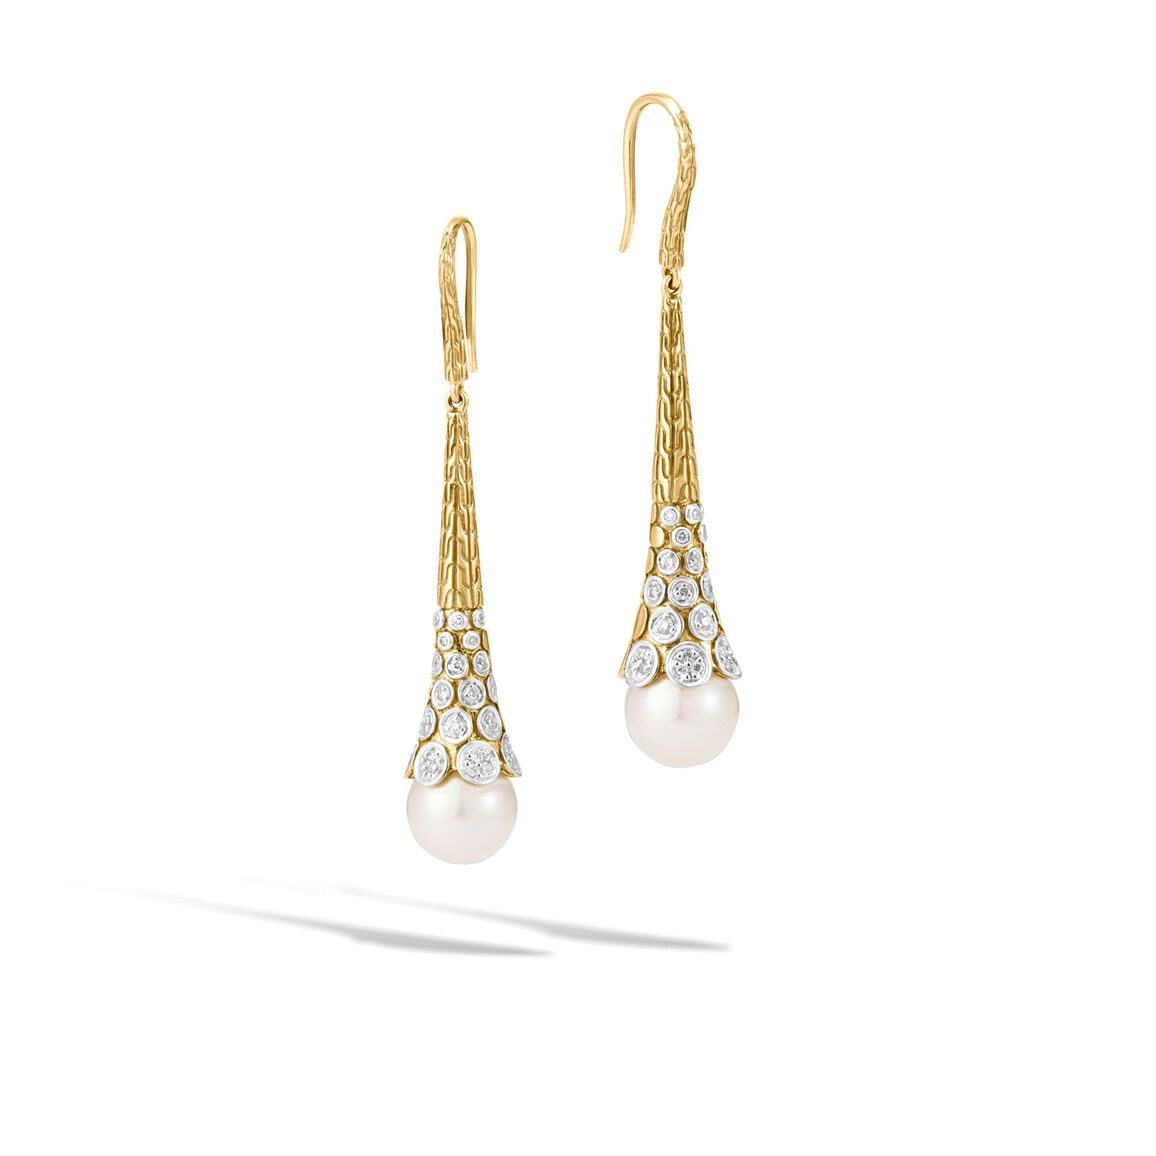 Dot Drop Earring in 18K Gold with 11MM Pearl and Diamonds